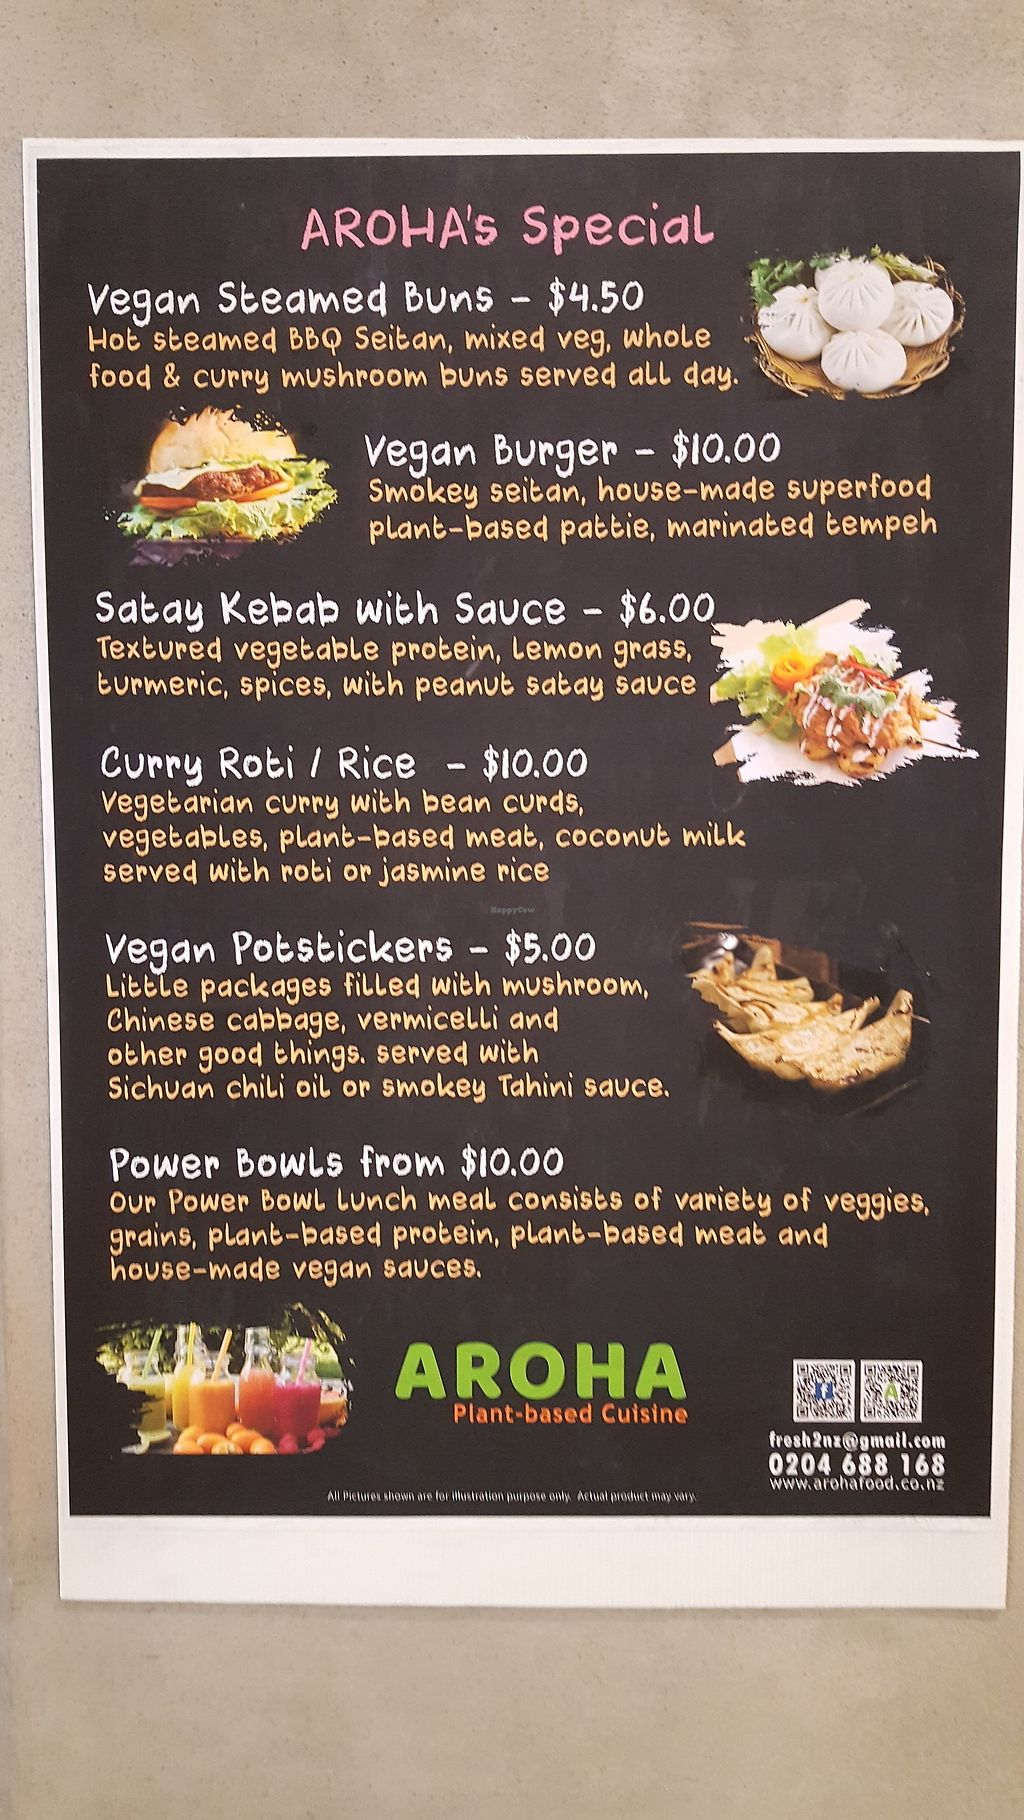 """Photo of Aroha  by <a href=""""/members/profile/VegoRoboto"""">VegoRoboto</a> <br/>Menu <br/> February 26, 2018  - <a href='/contact/abuse/image/113074/363904'>Report</a>"""